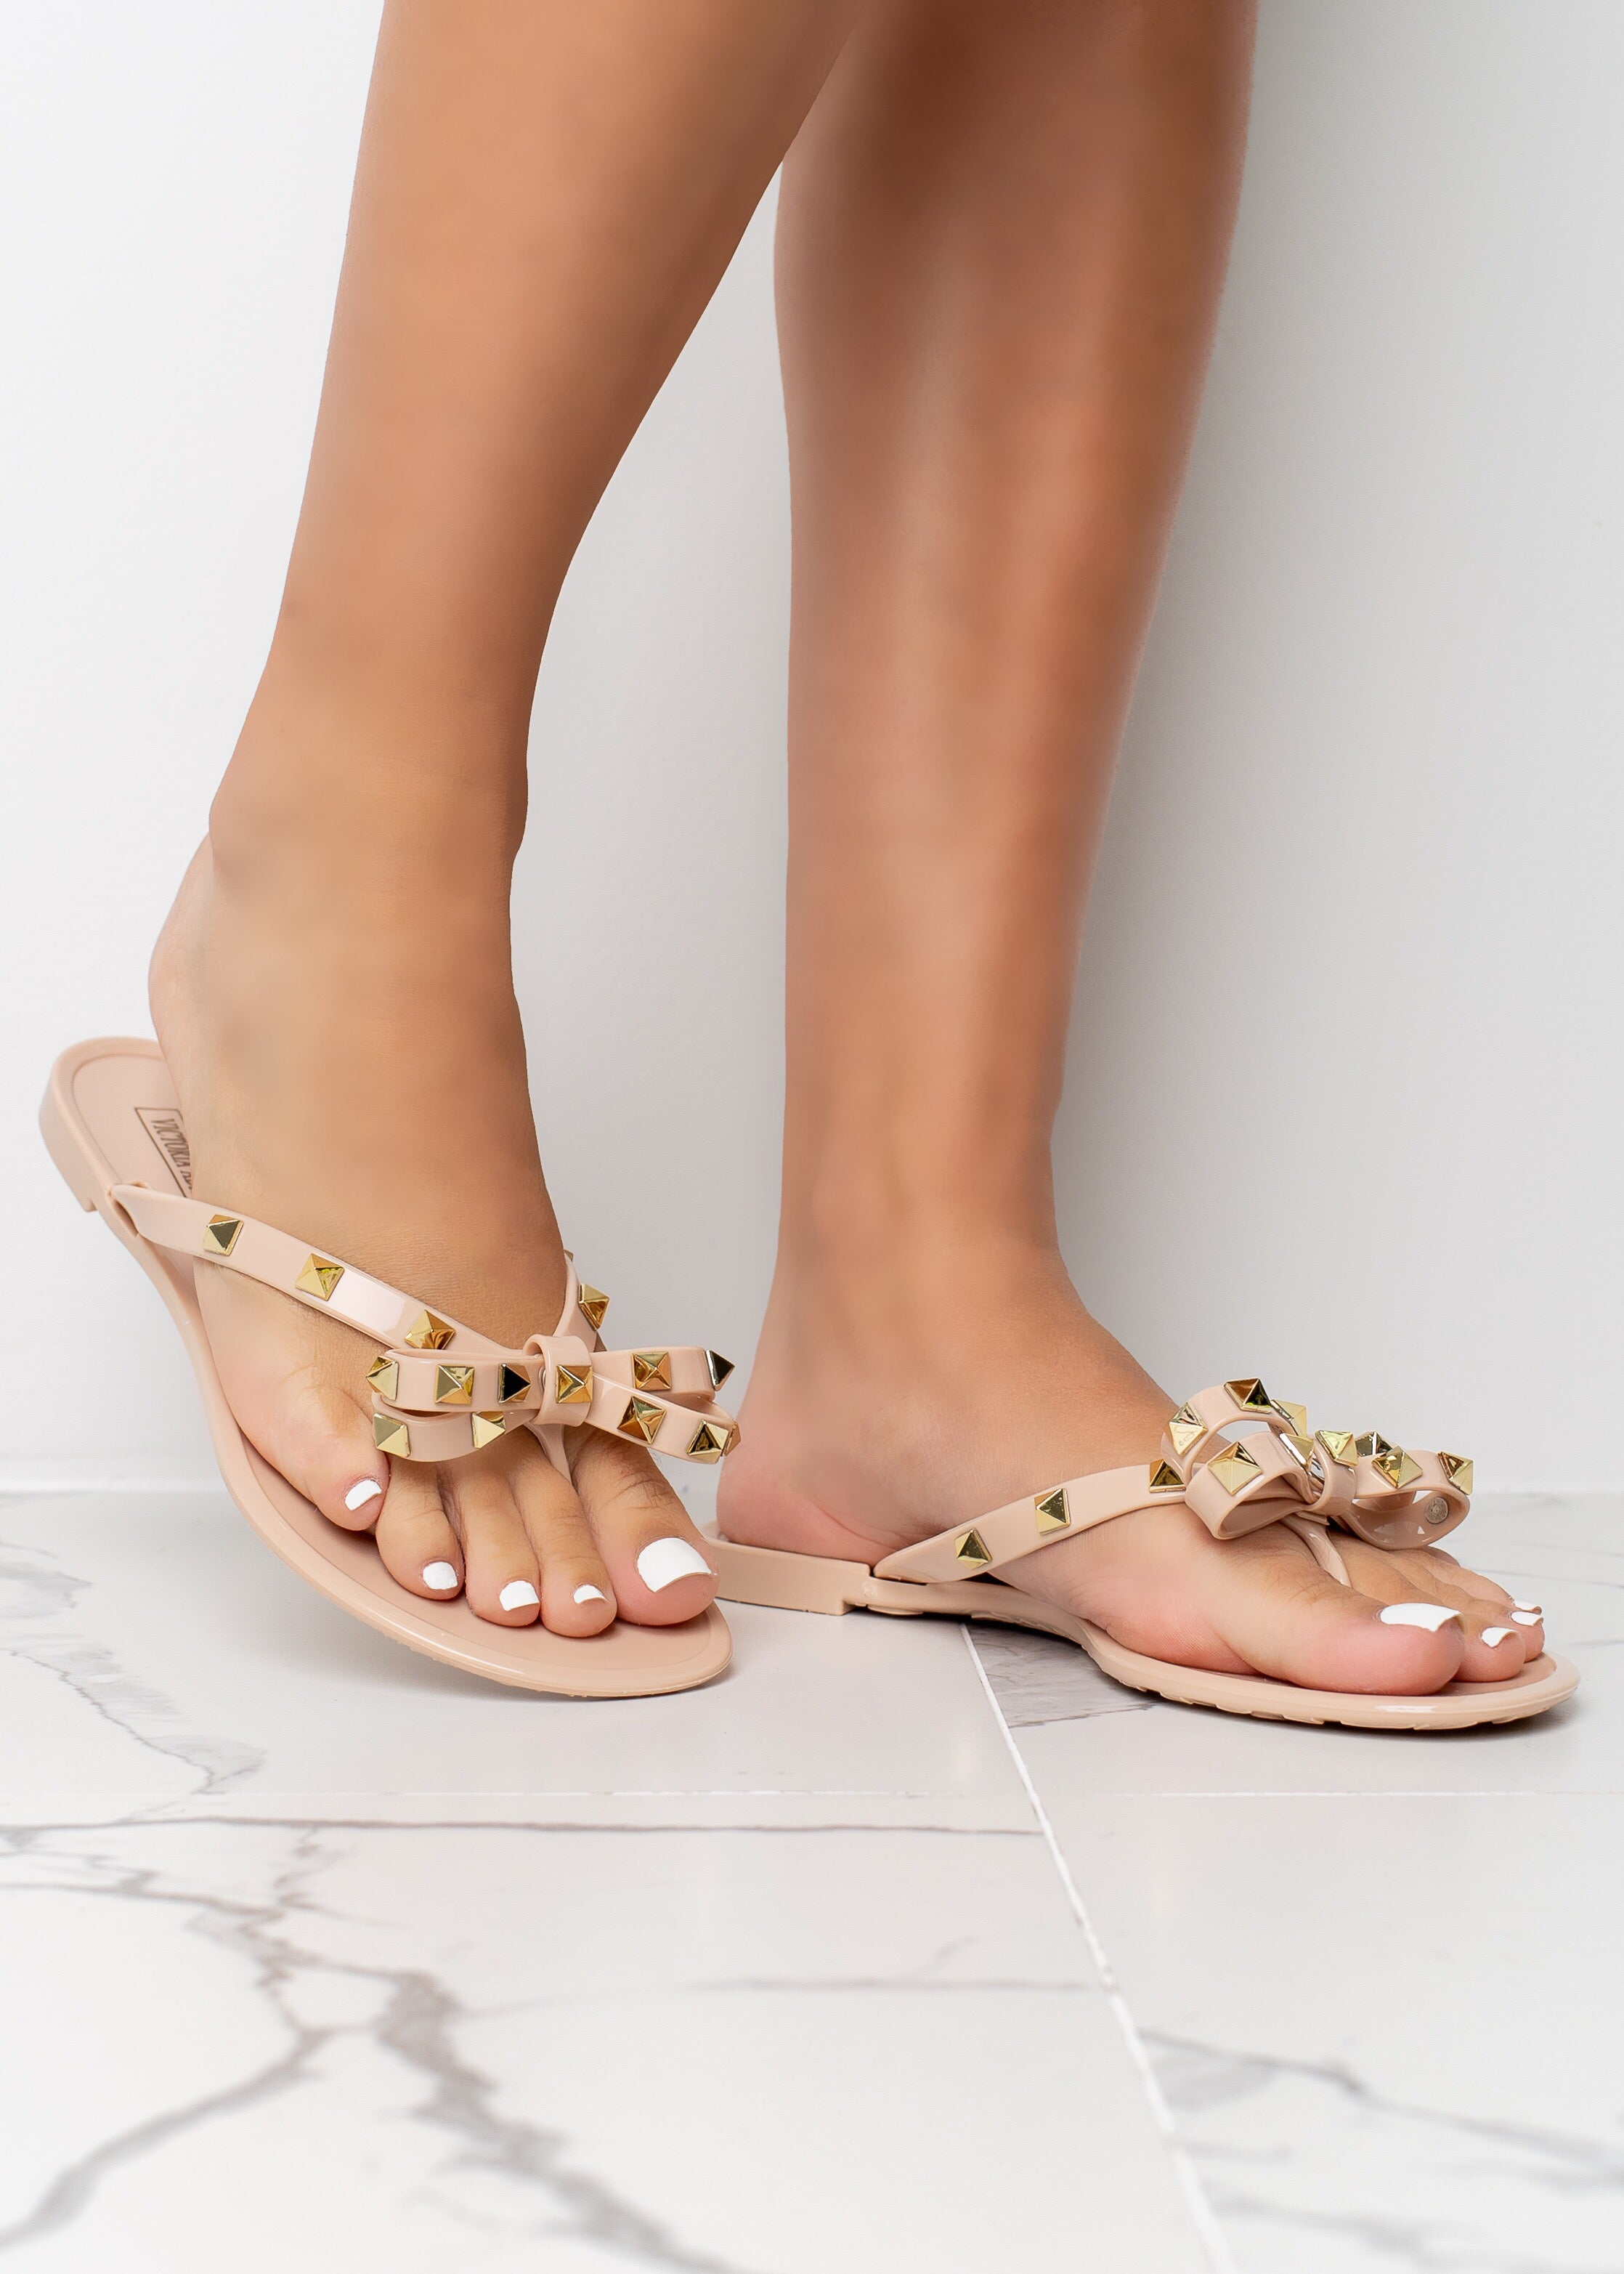 Tie The Knot Nude Jelly Stud Sandals